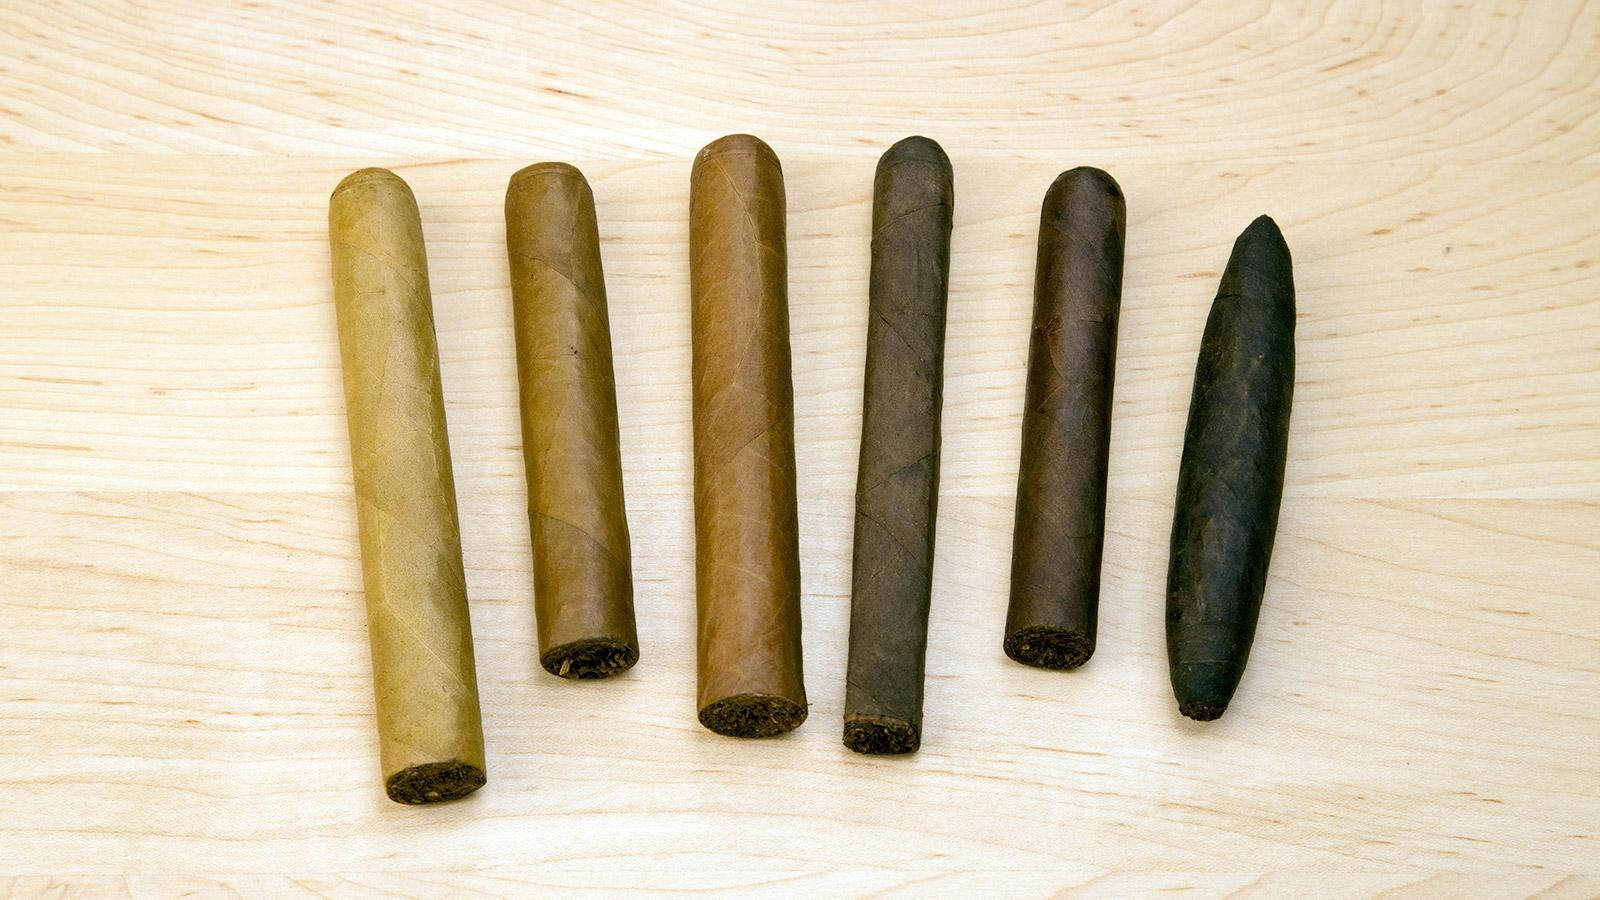 Cigar Shapes, Sizes and Colors